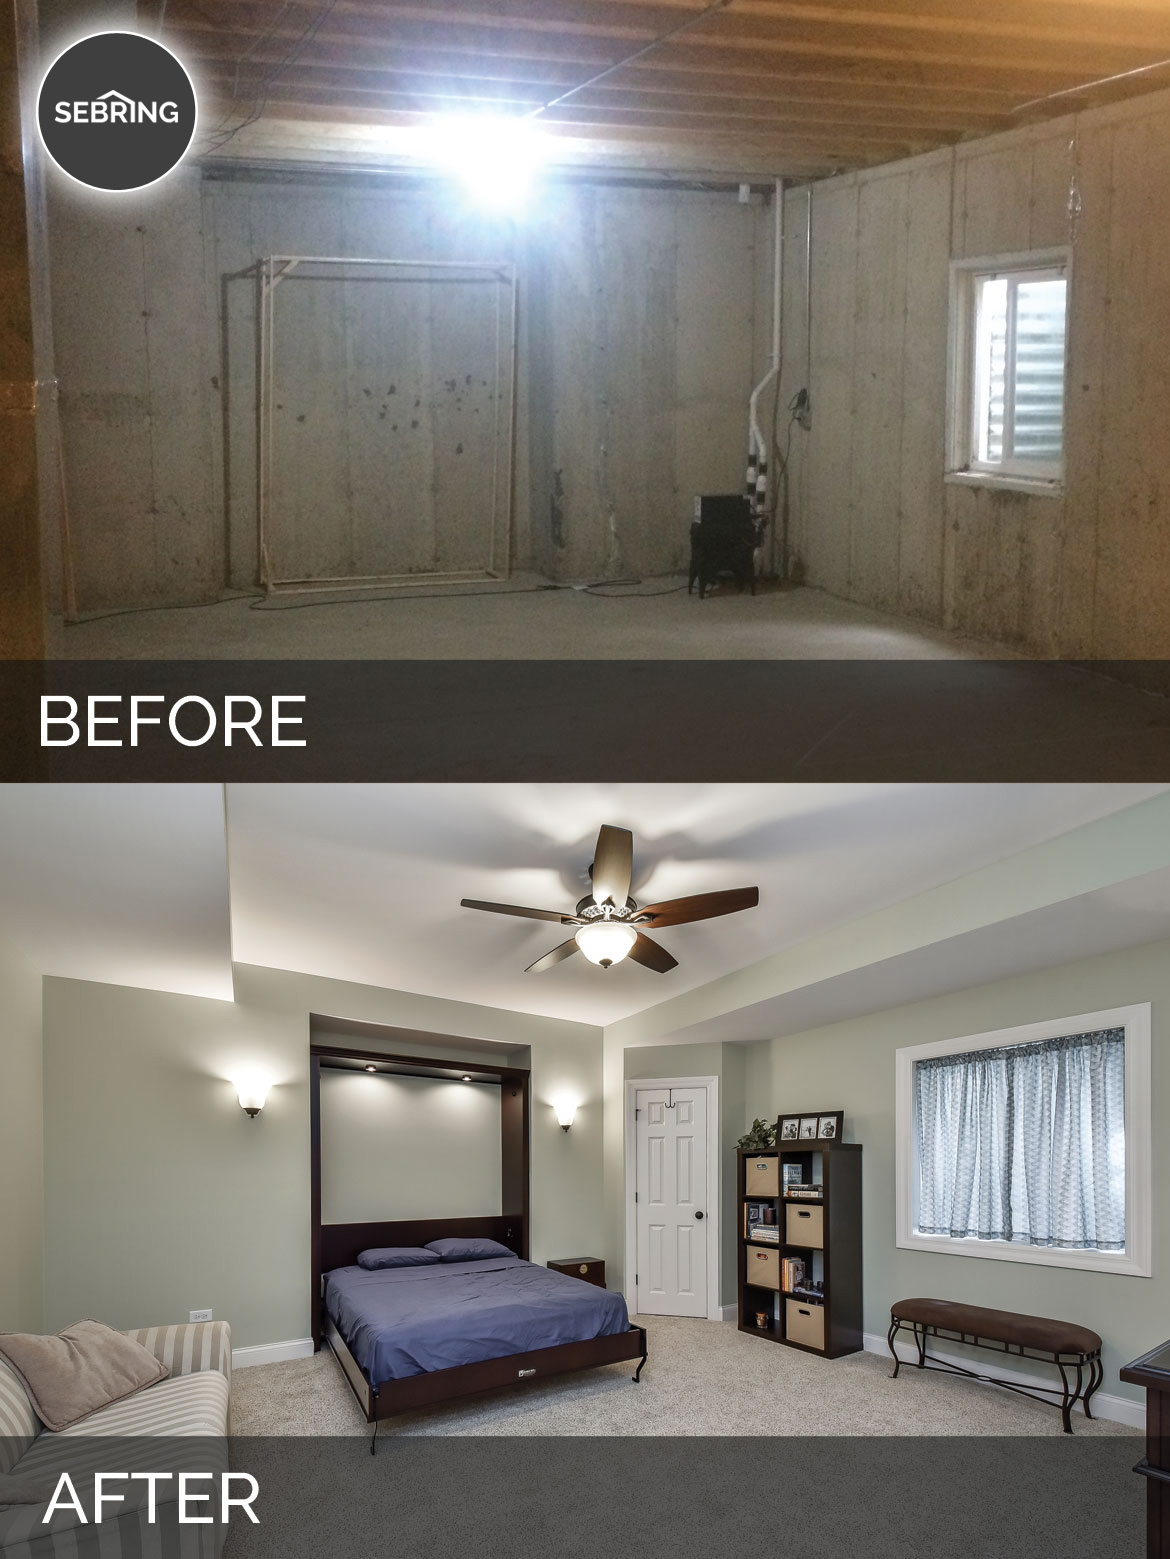 Brian Amp Kelli S Basement Before Amp After Pictures Home